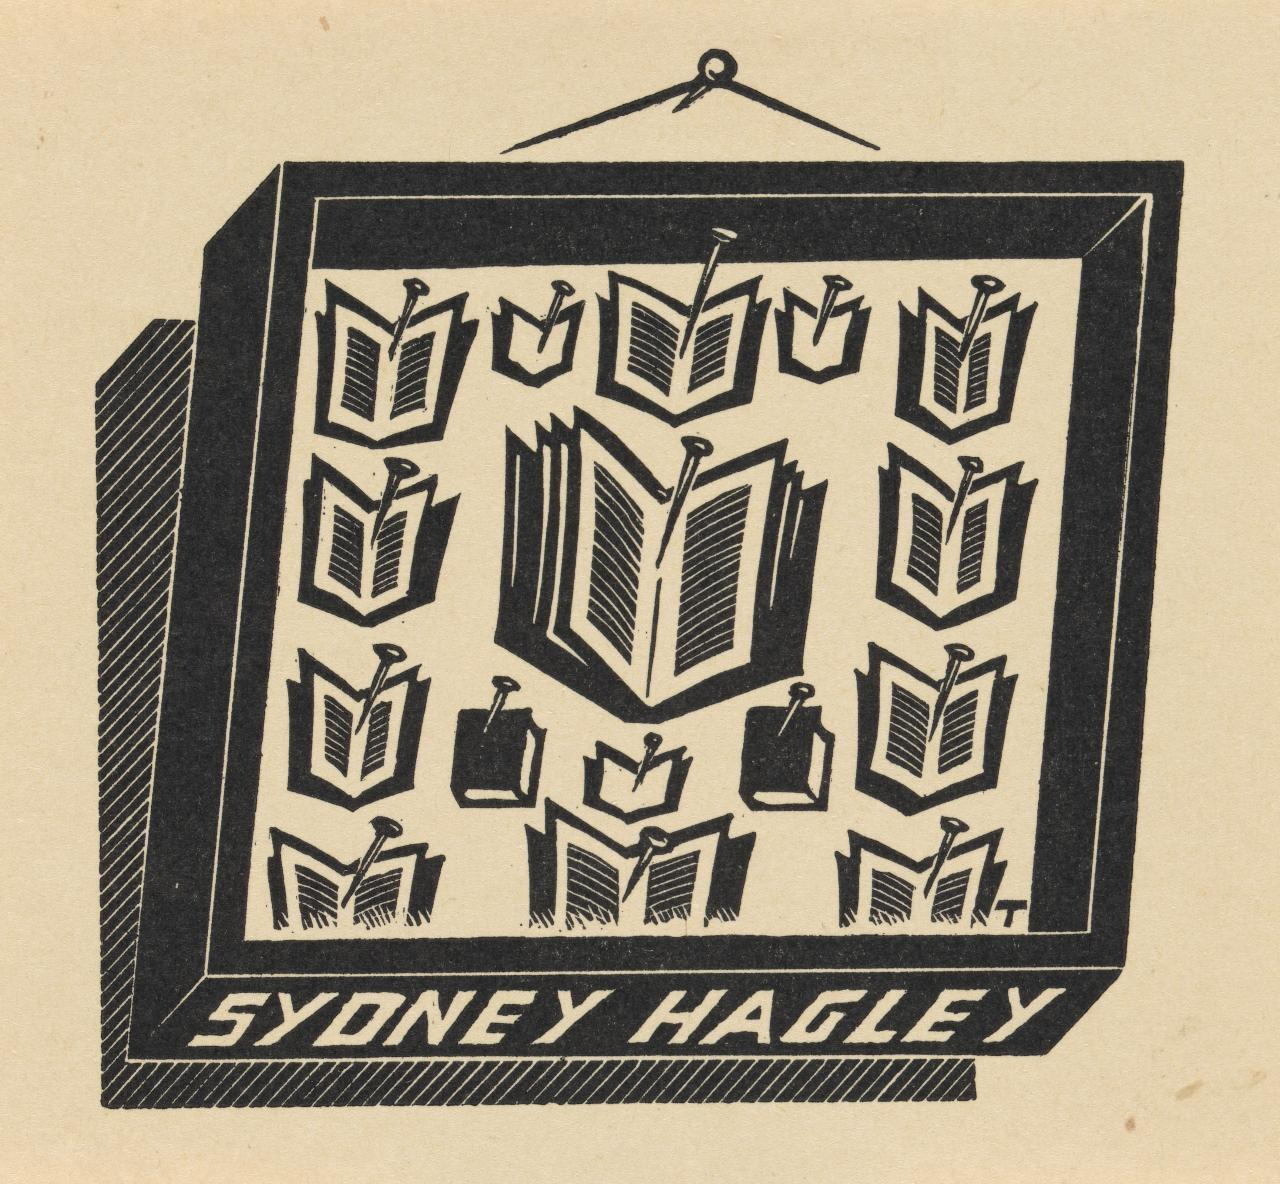 Sydney Hadley, bookplate